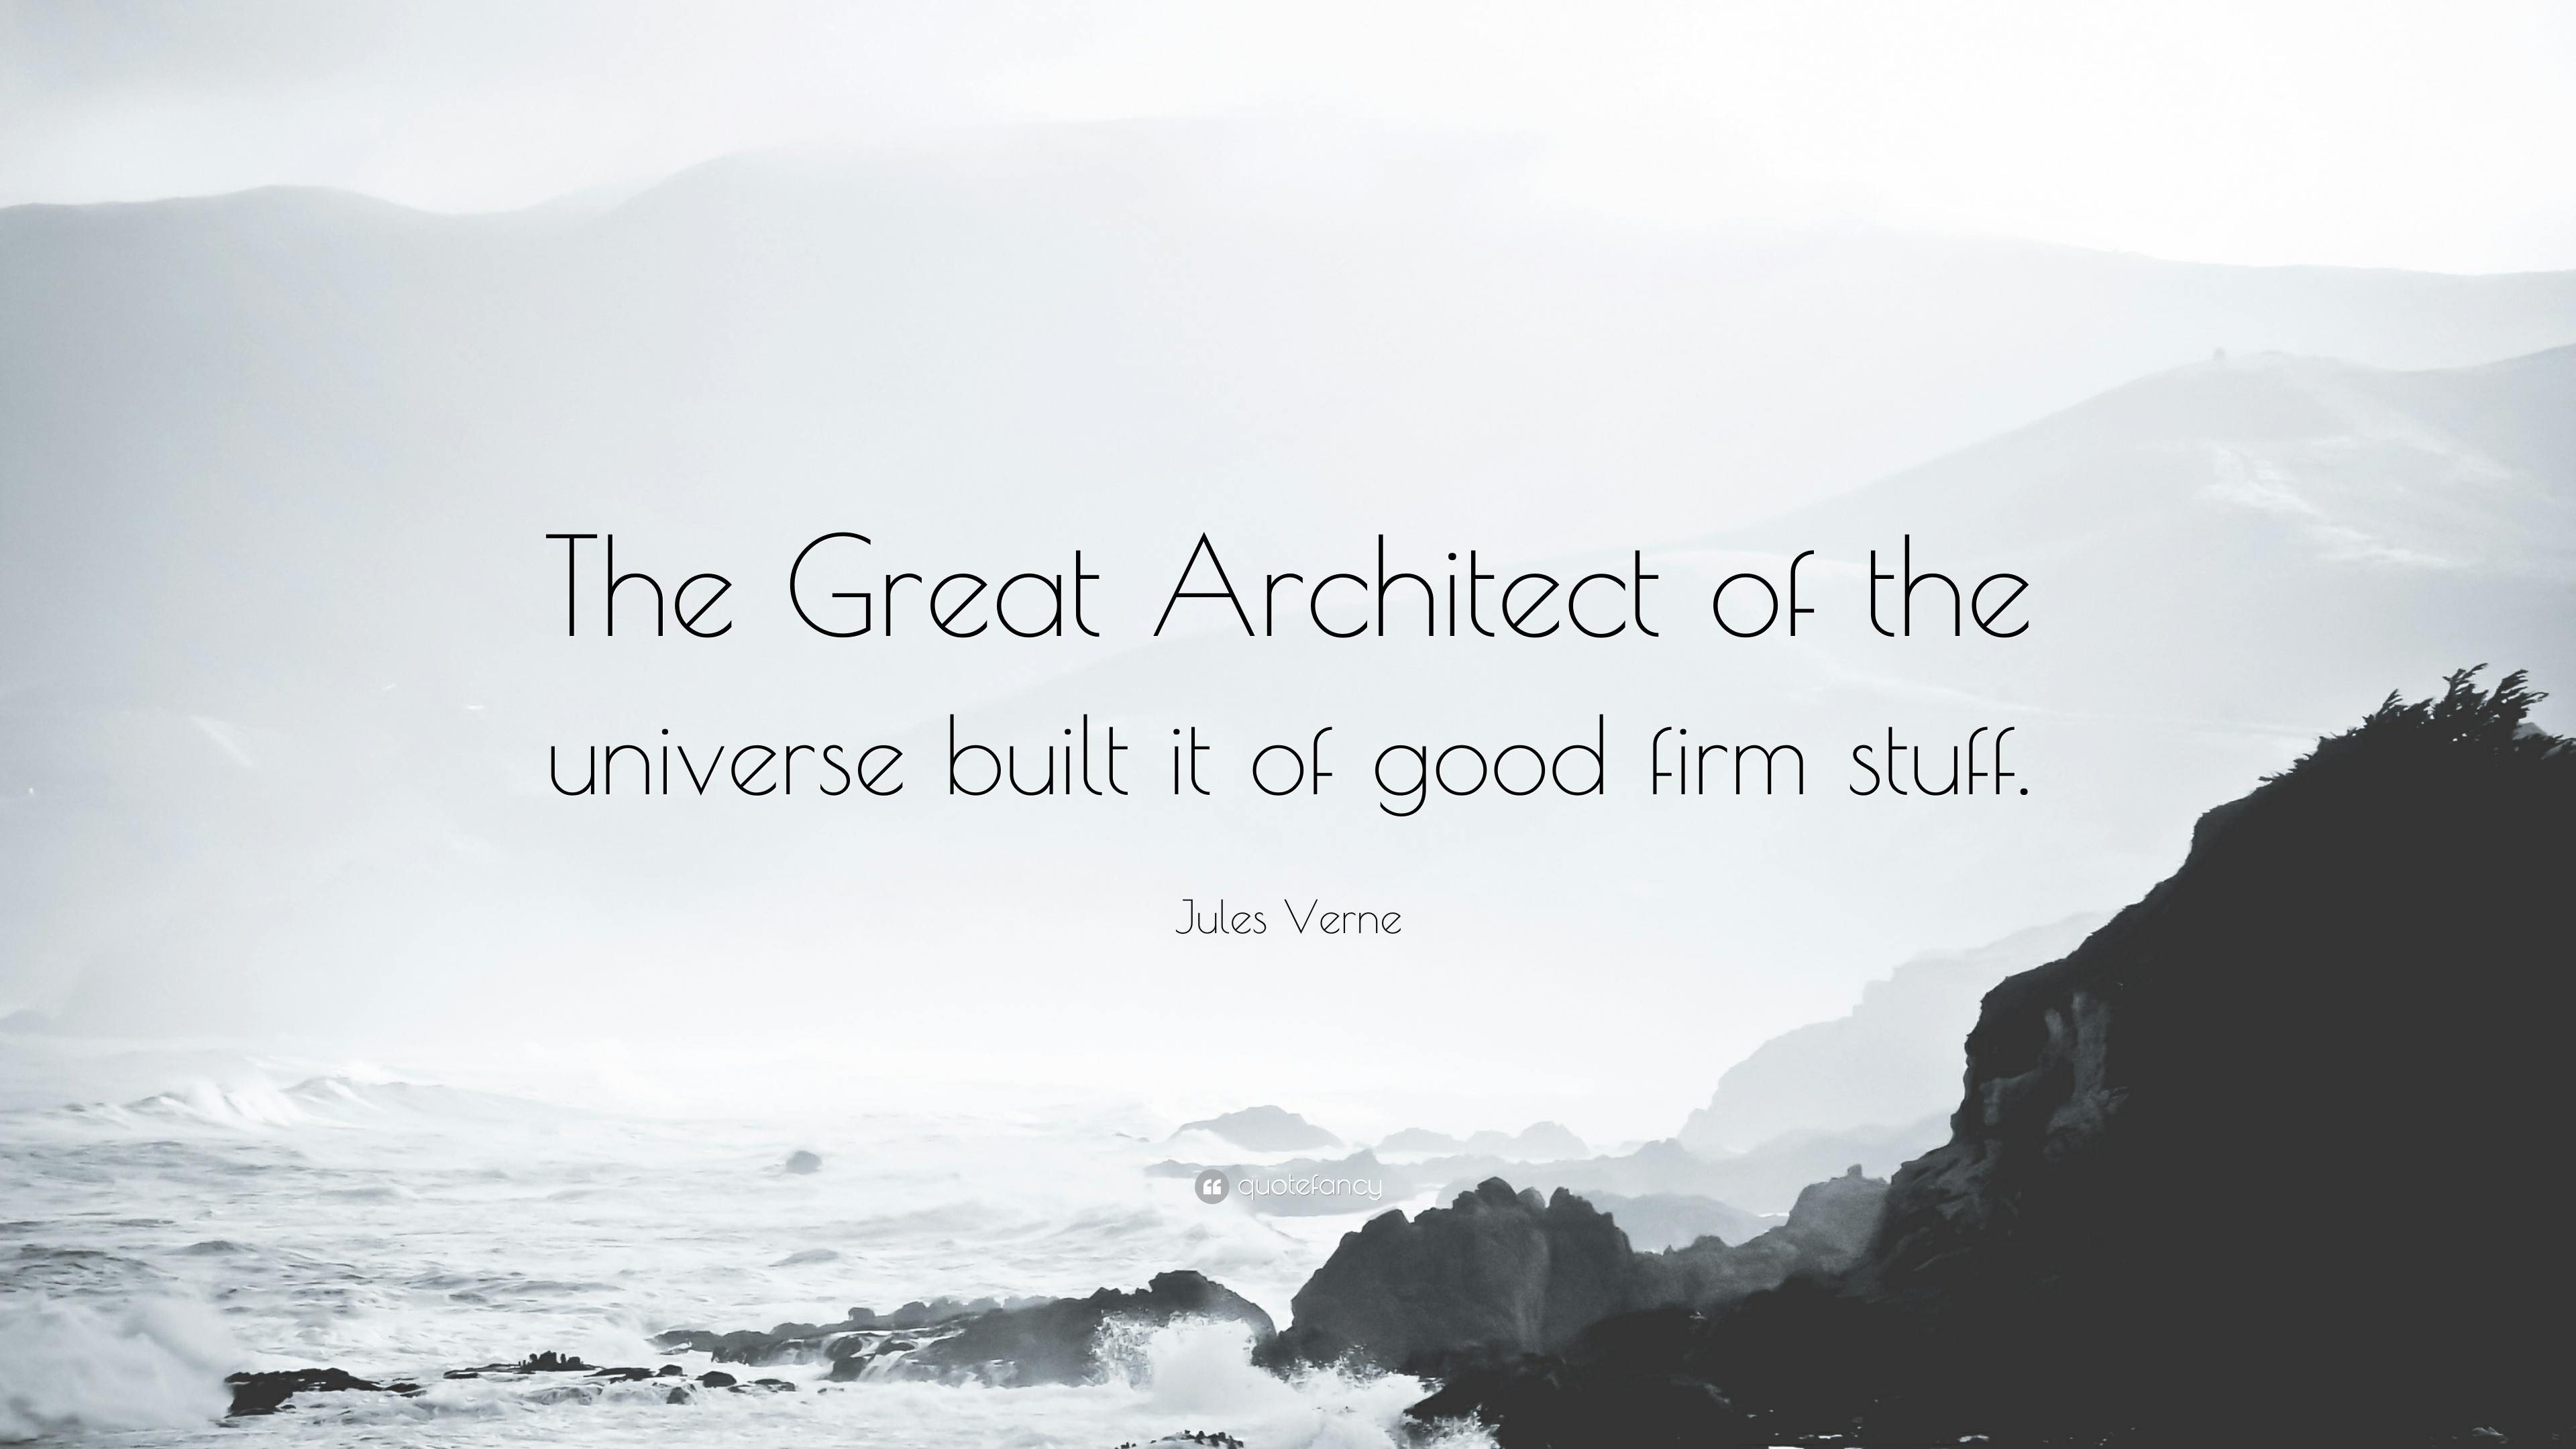 Jules Verne Quote: The Great Architect of the universe built it of good  firm